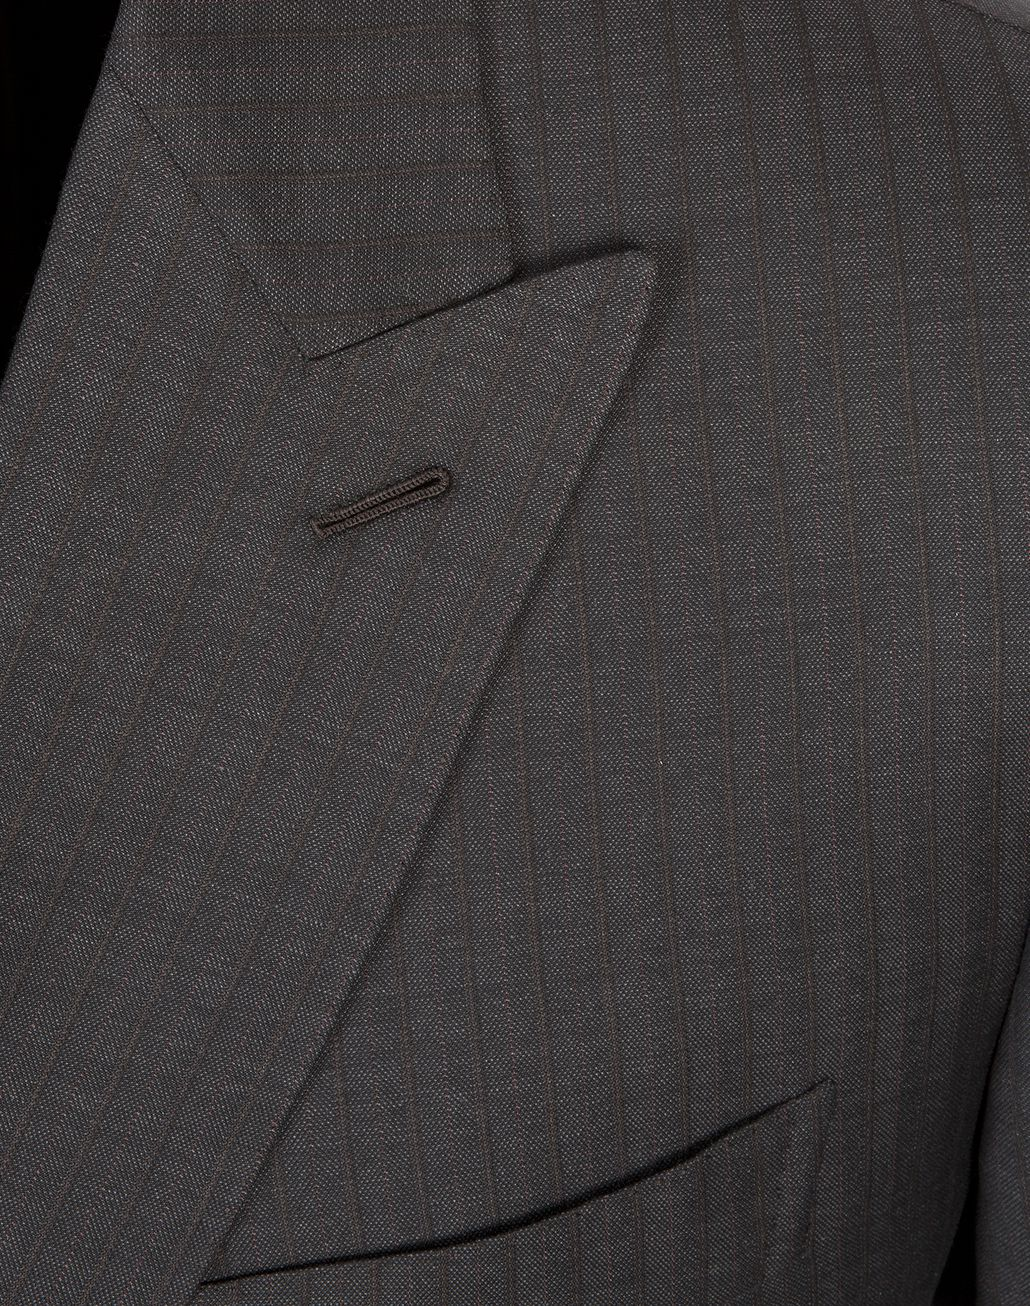 BRIONI Grey and Dark Brown Striped Madison Double Breasted Suit Suits & Jackets U a